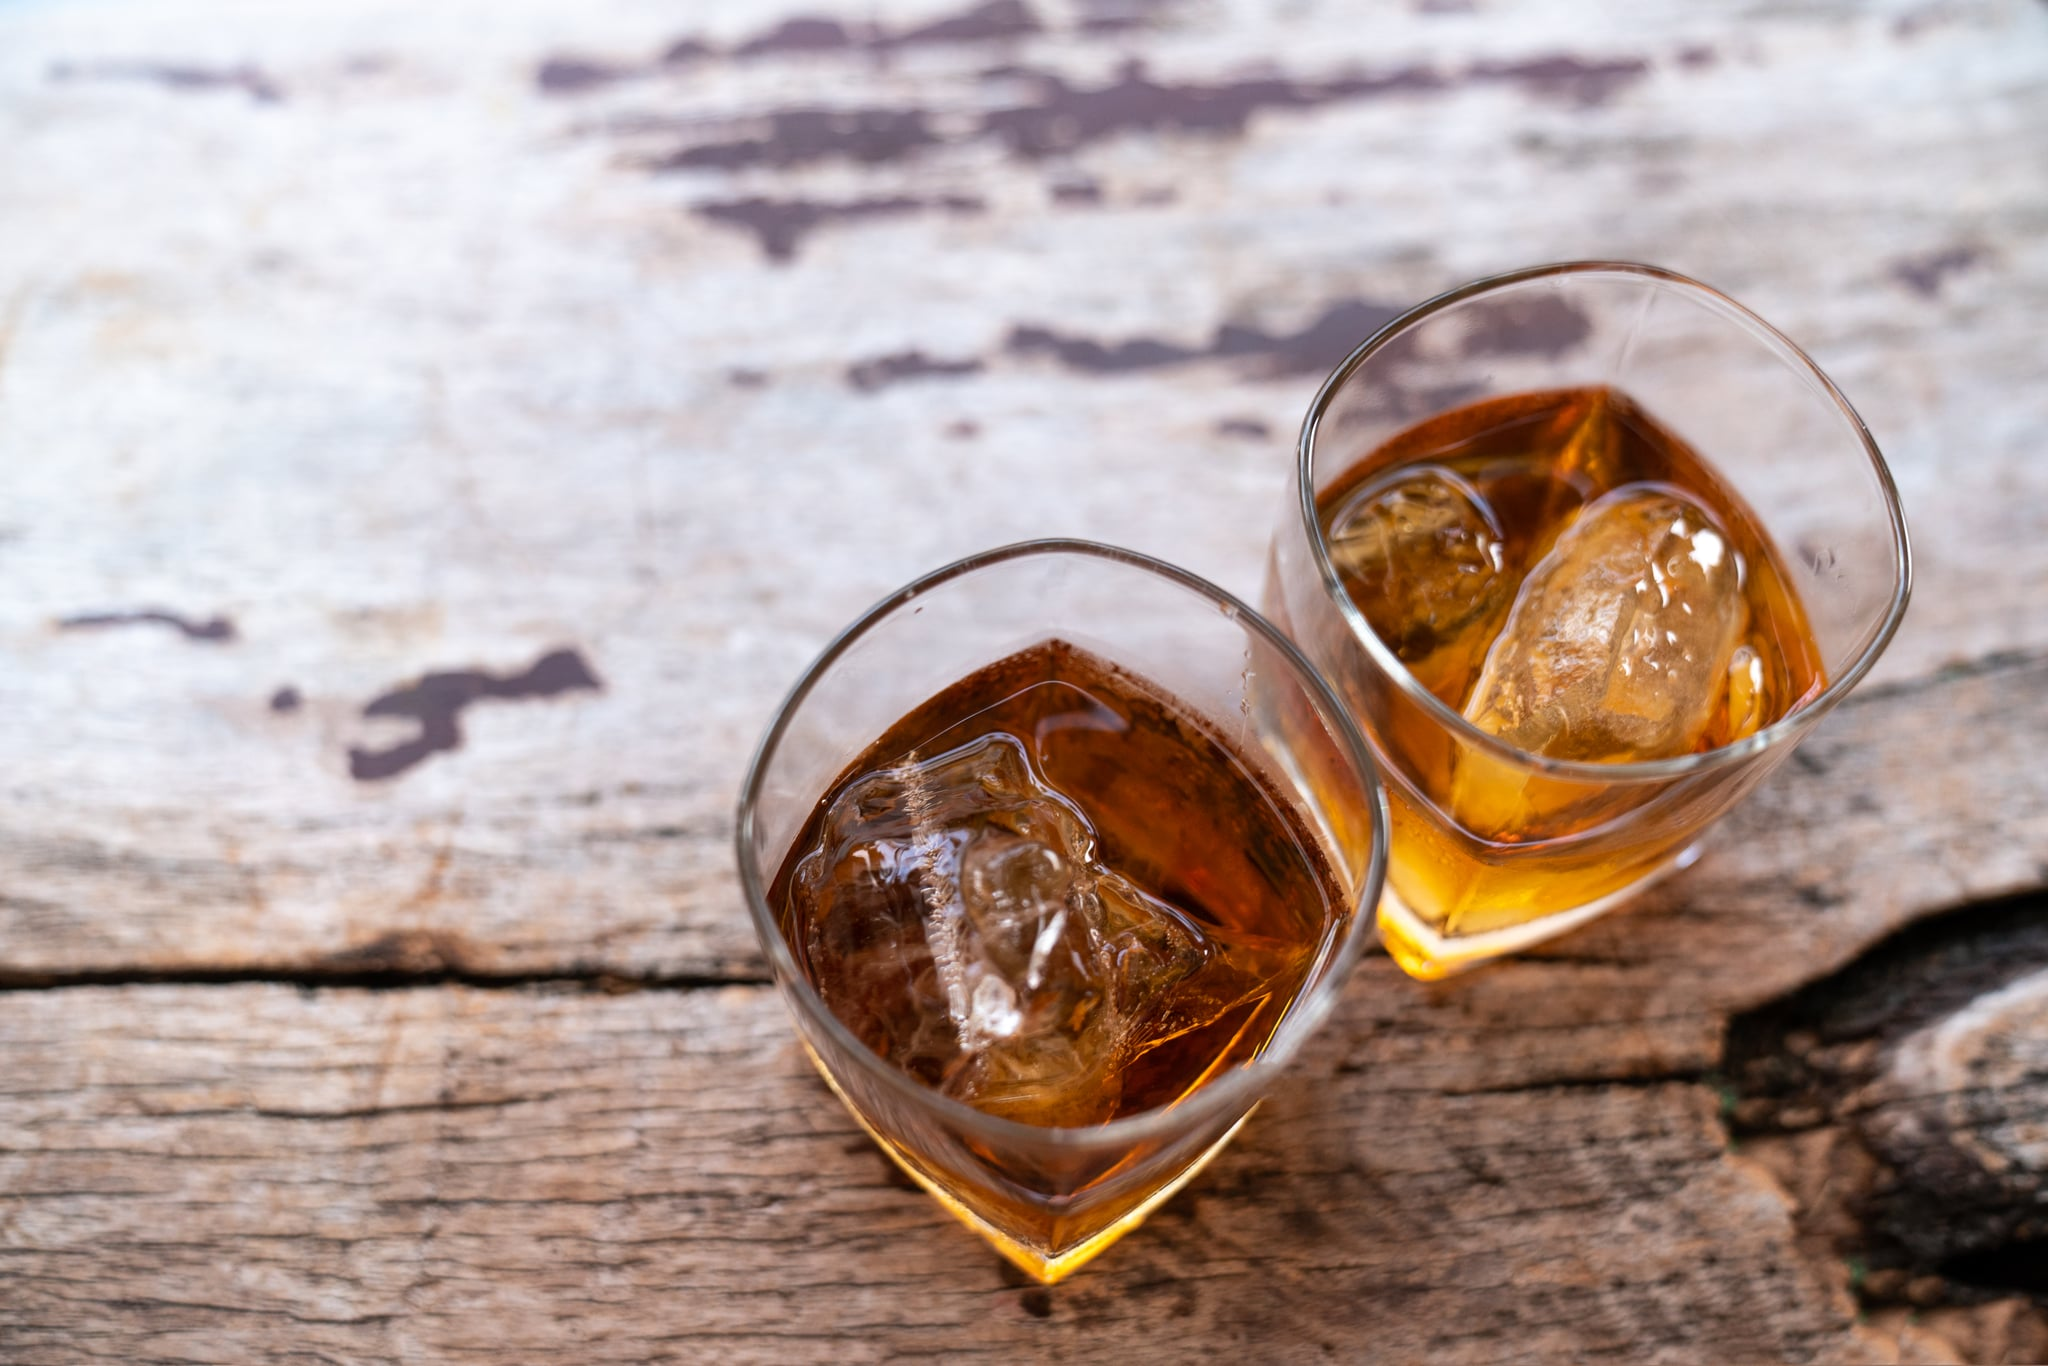 Two rye whiskey cocktail drinks toasted together,Addictive substance